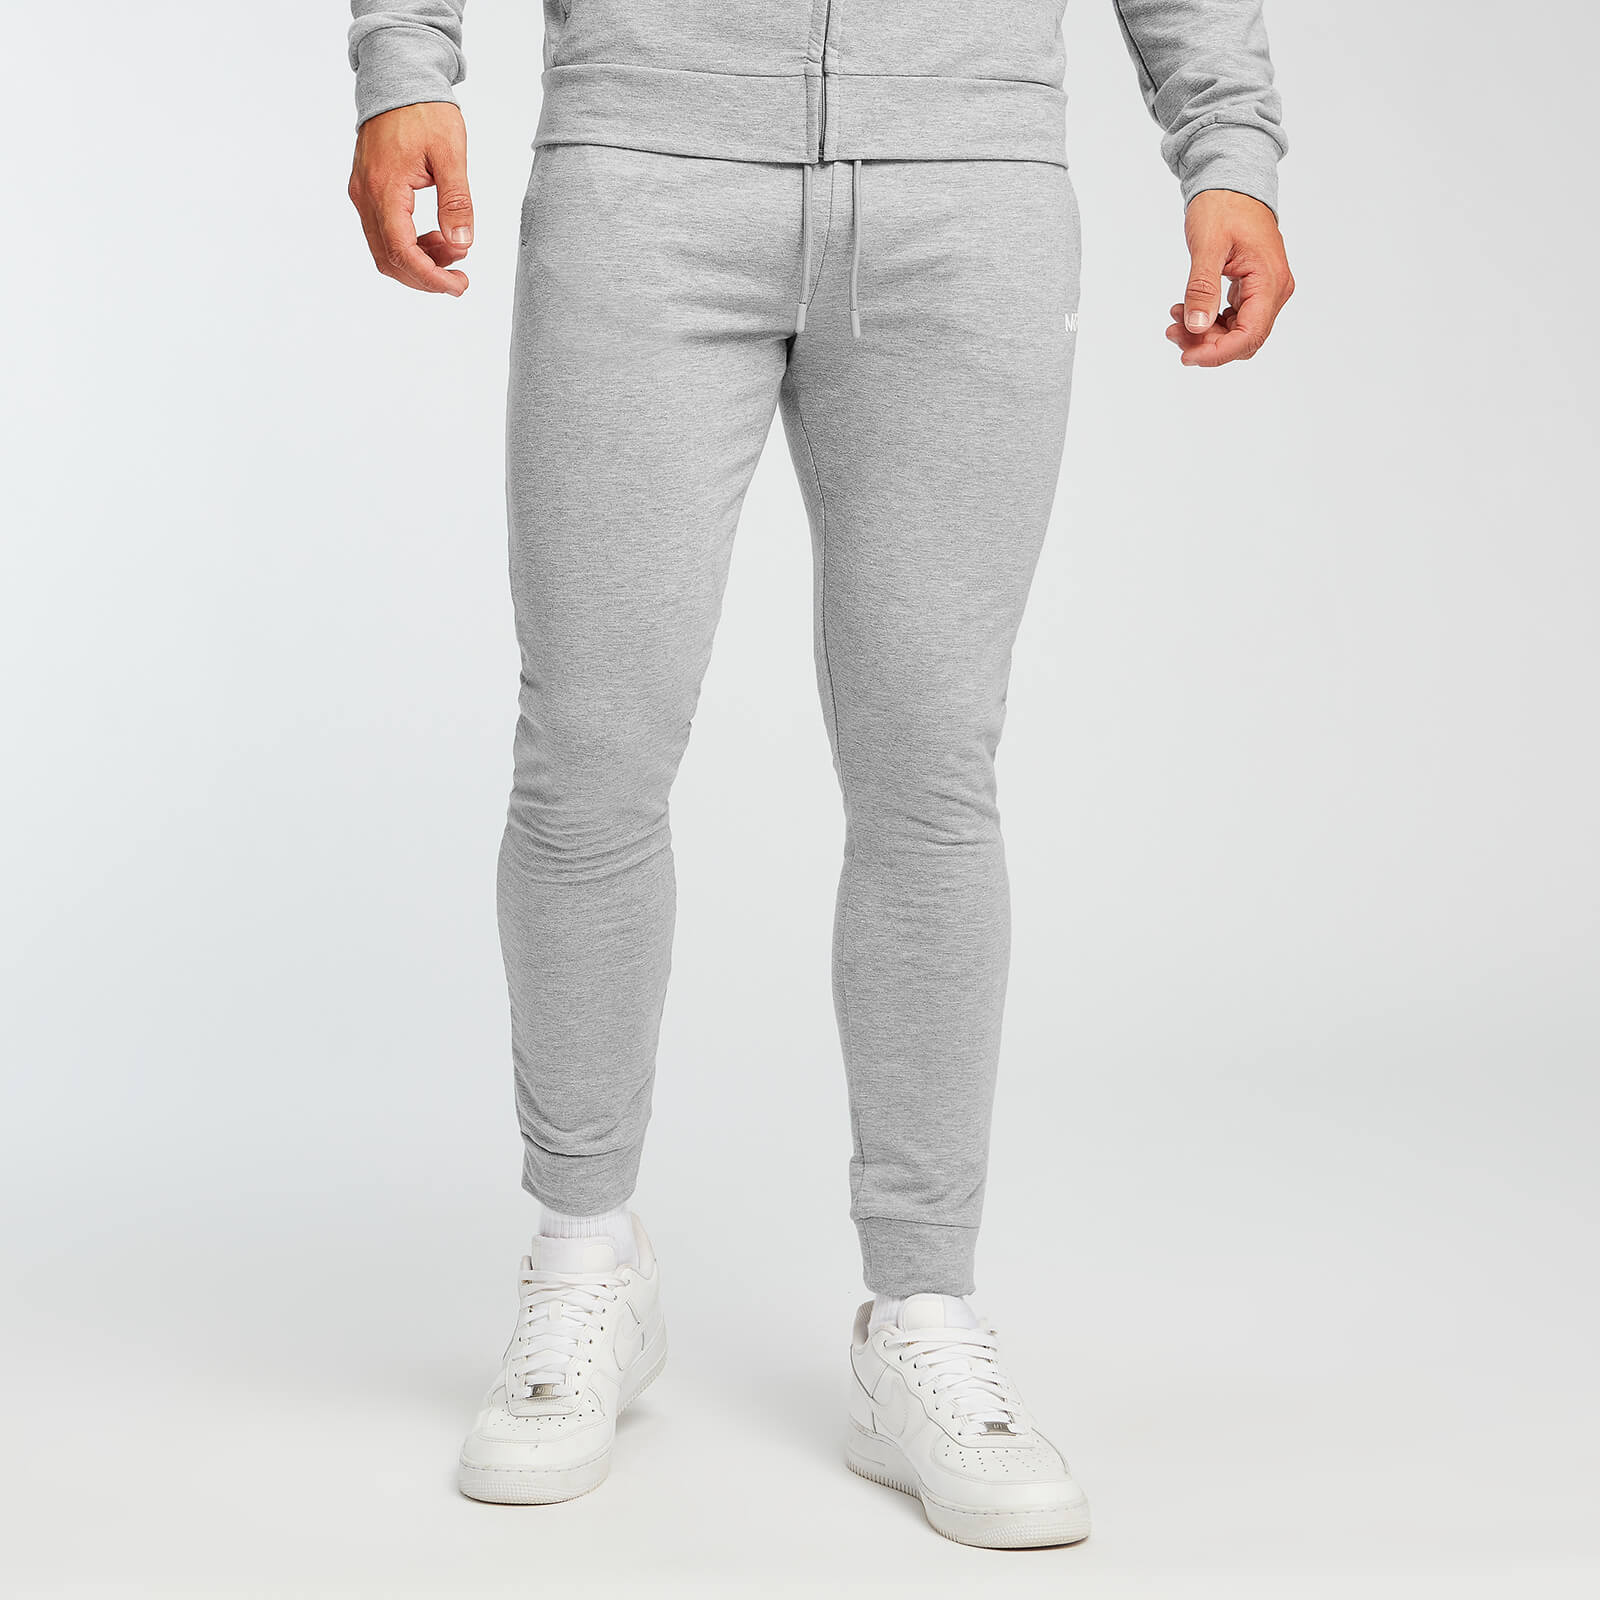 Jogging slim MP Form pour hommes – Gris chiné - XL